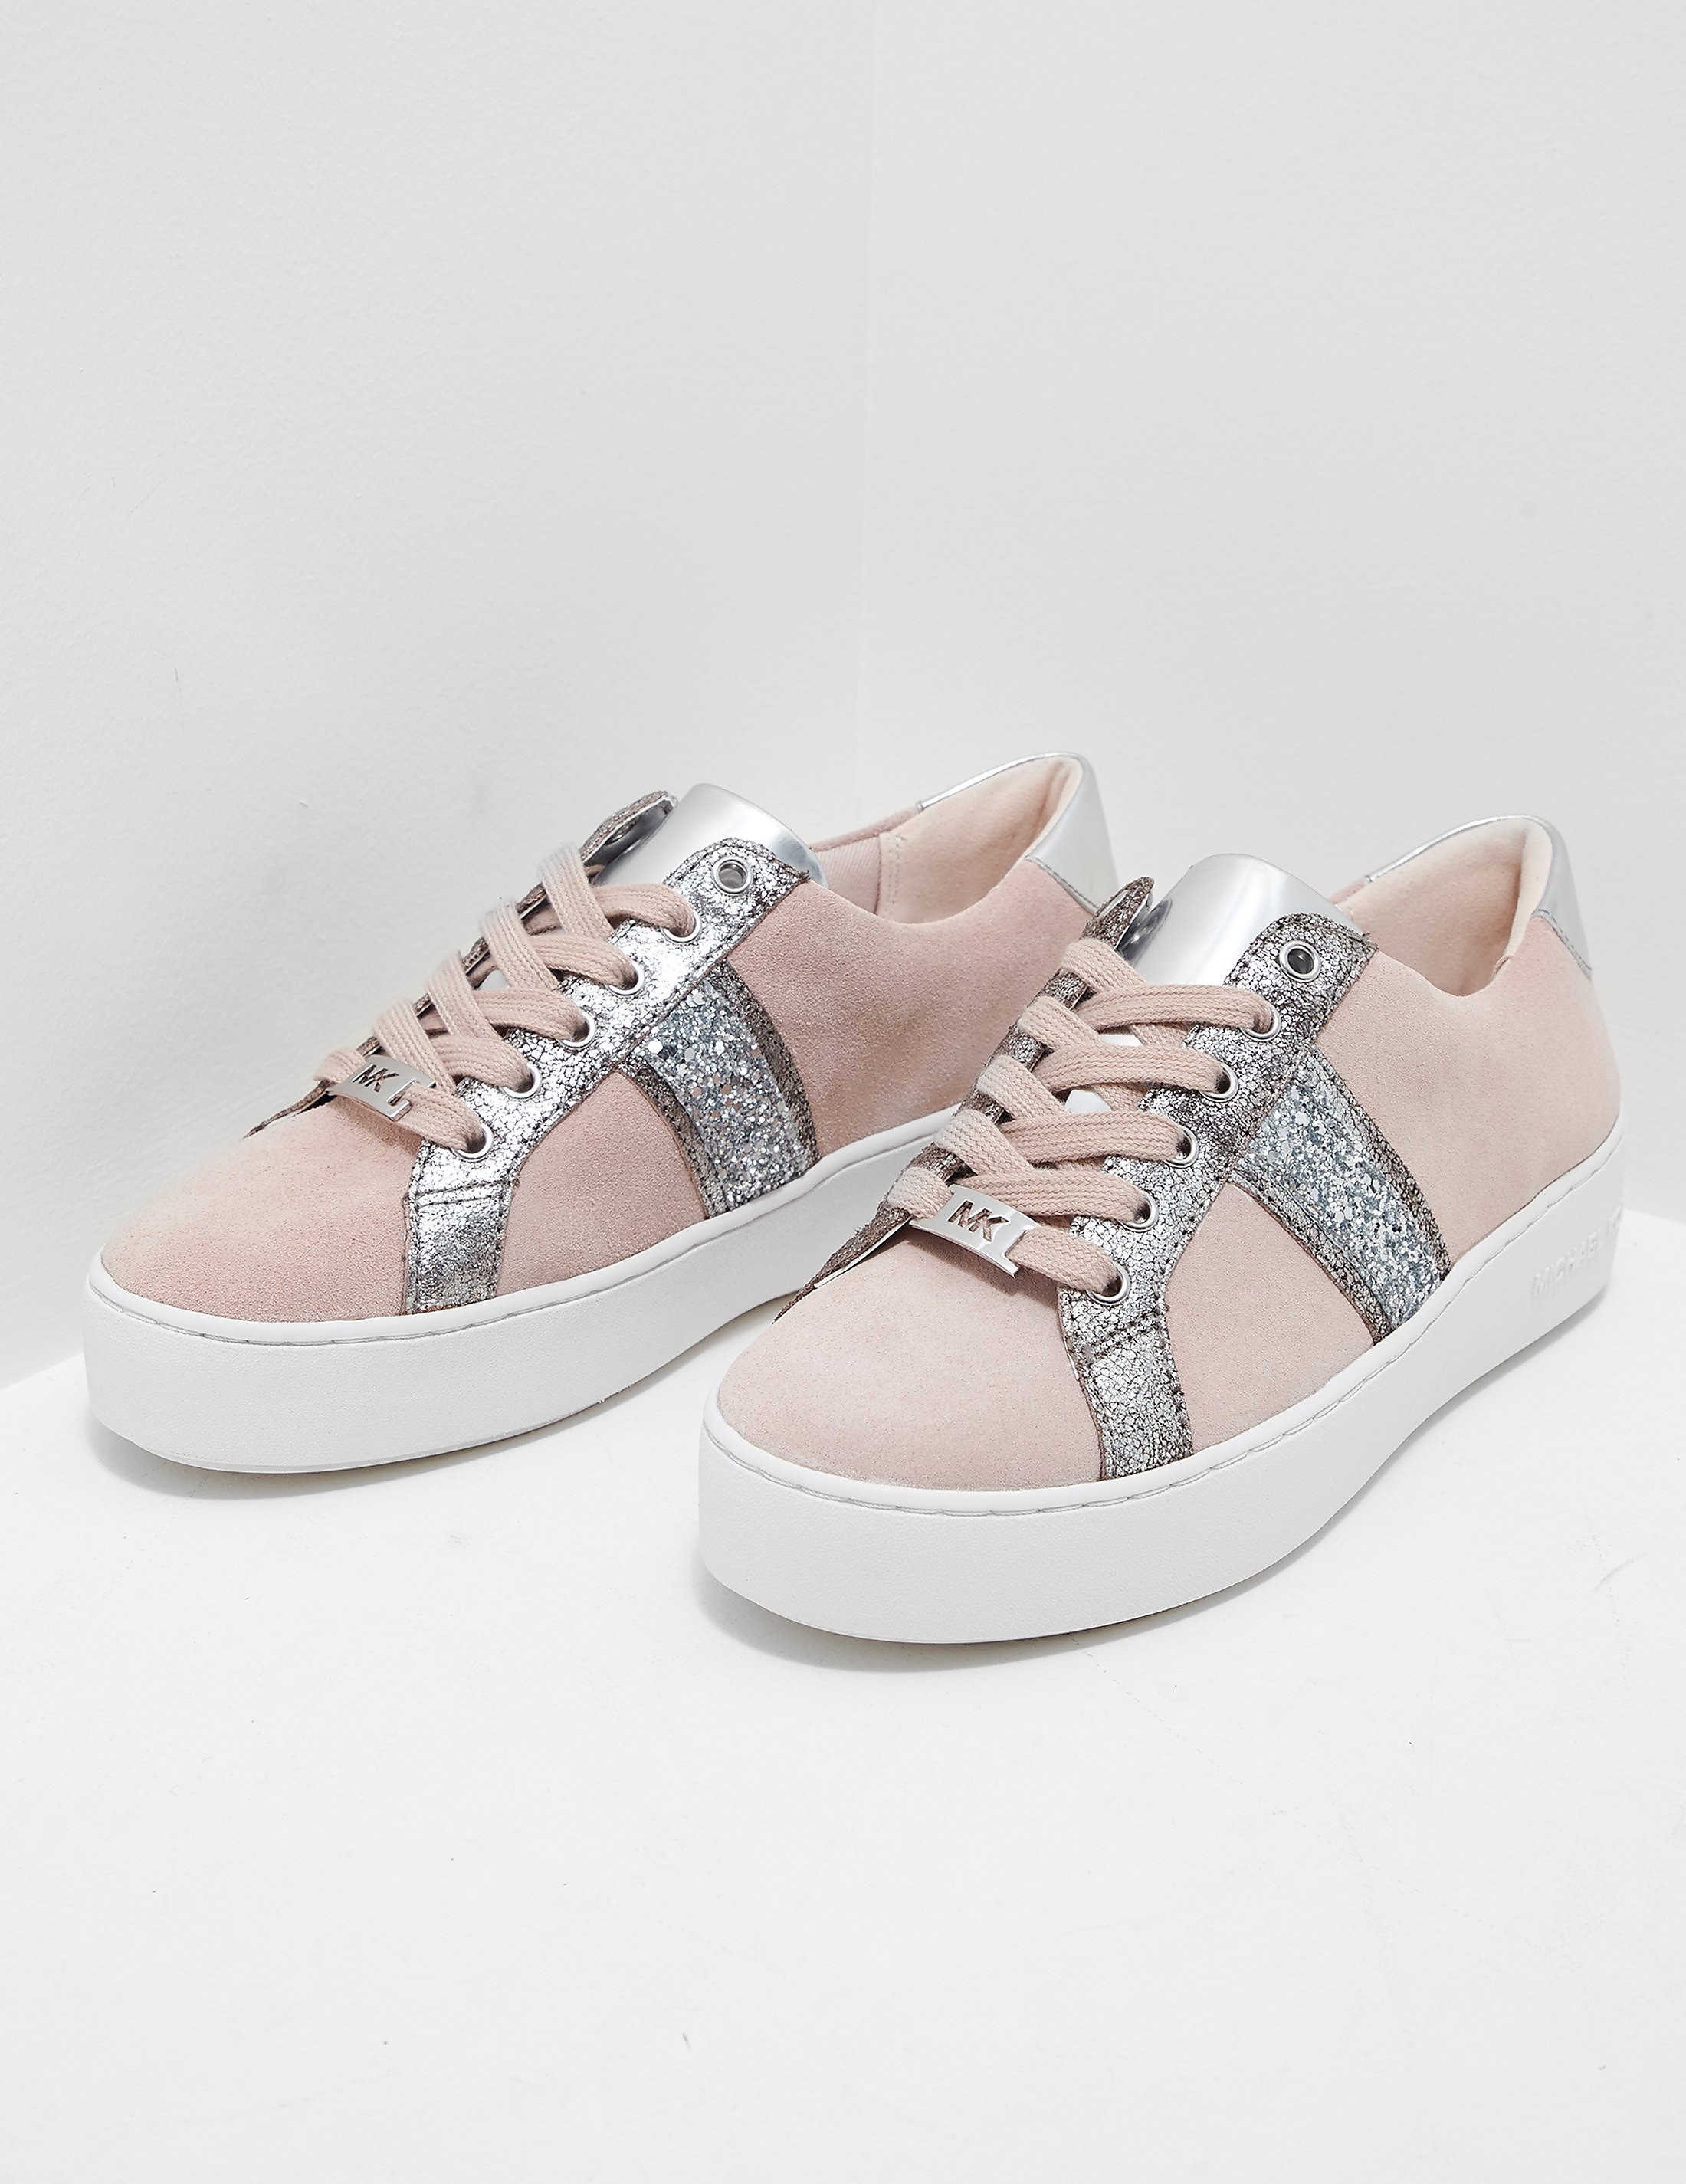 Michael Kors Poppy Trainers